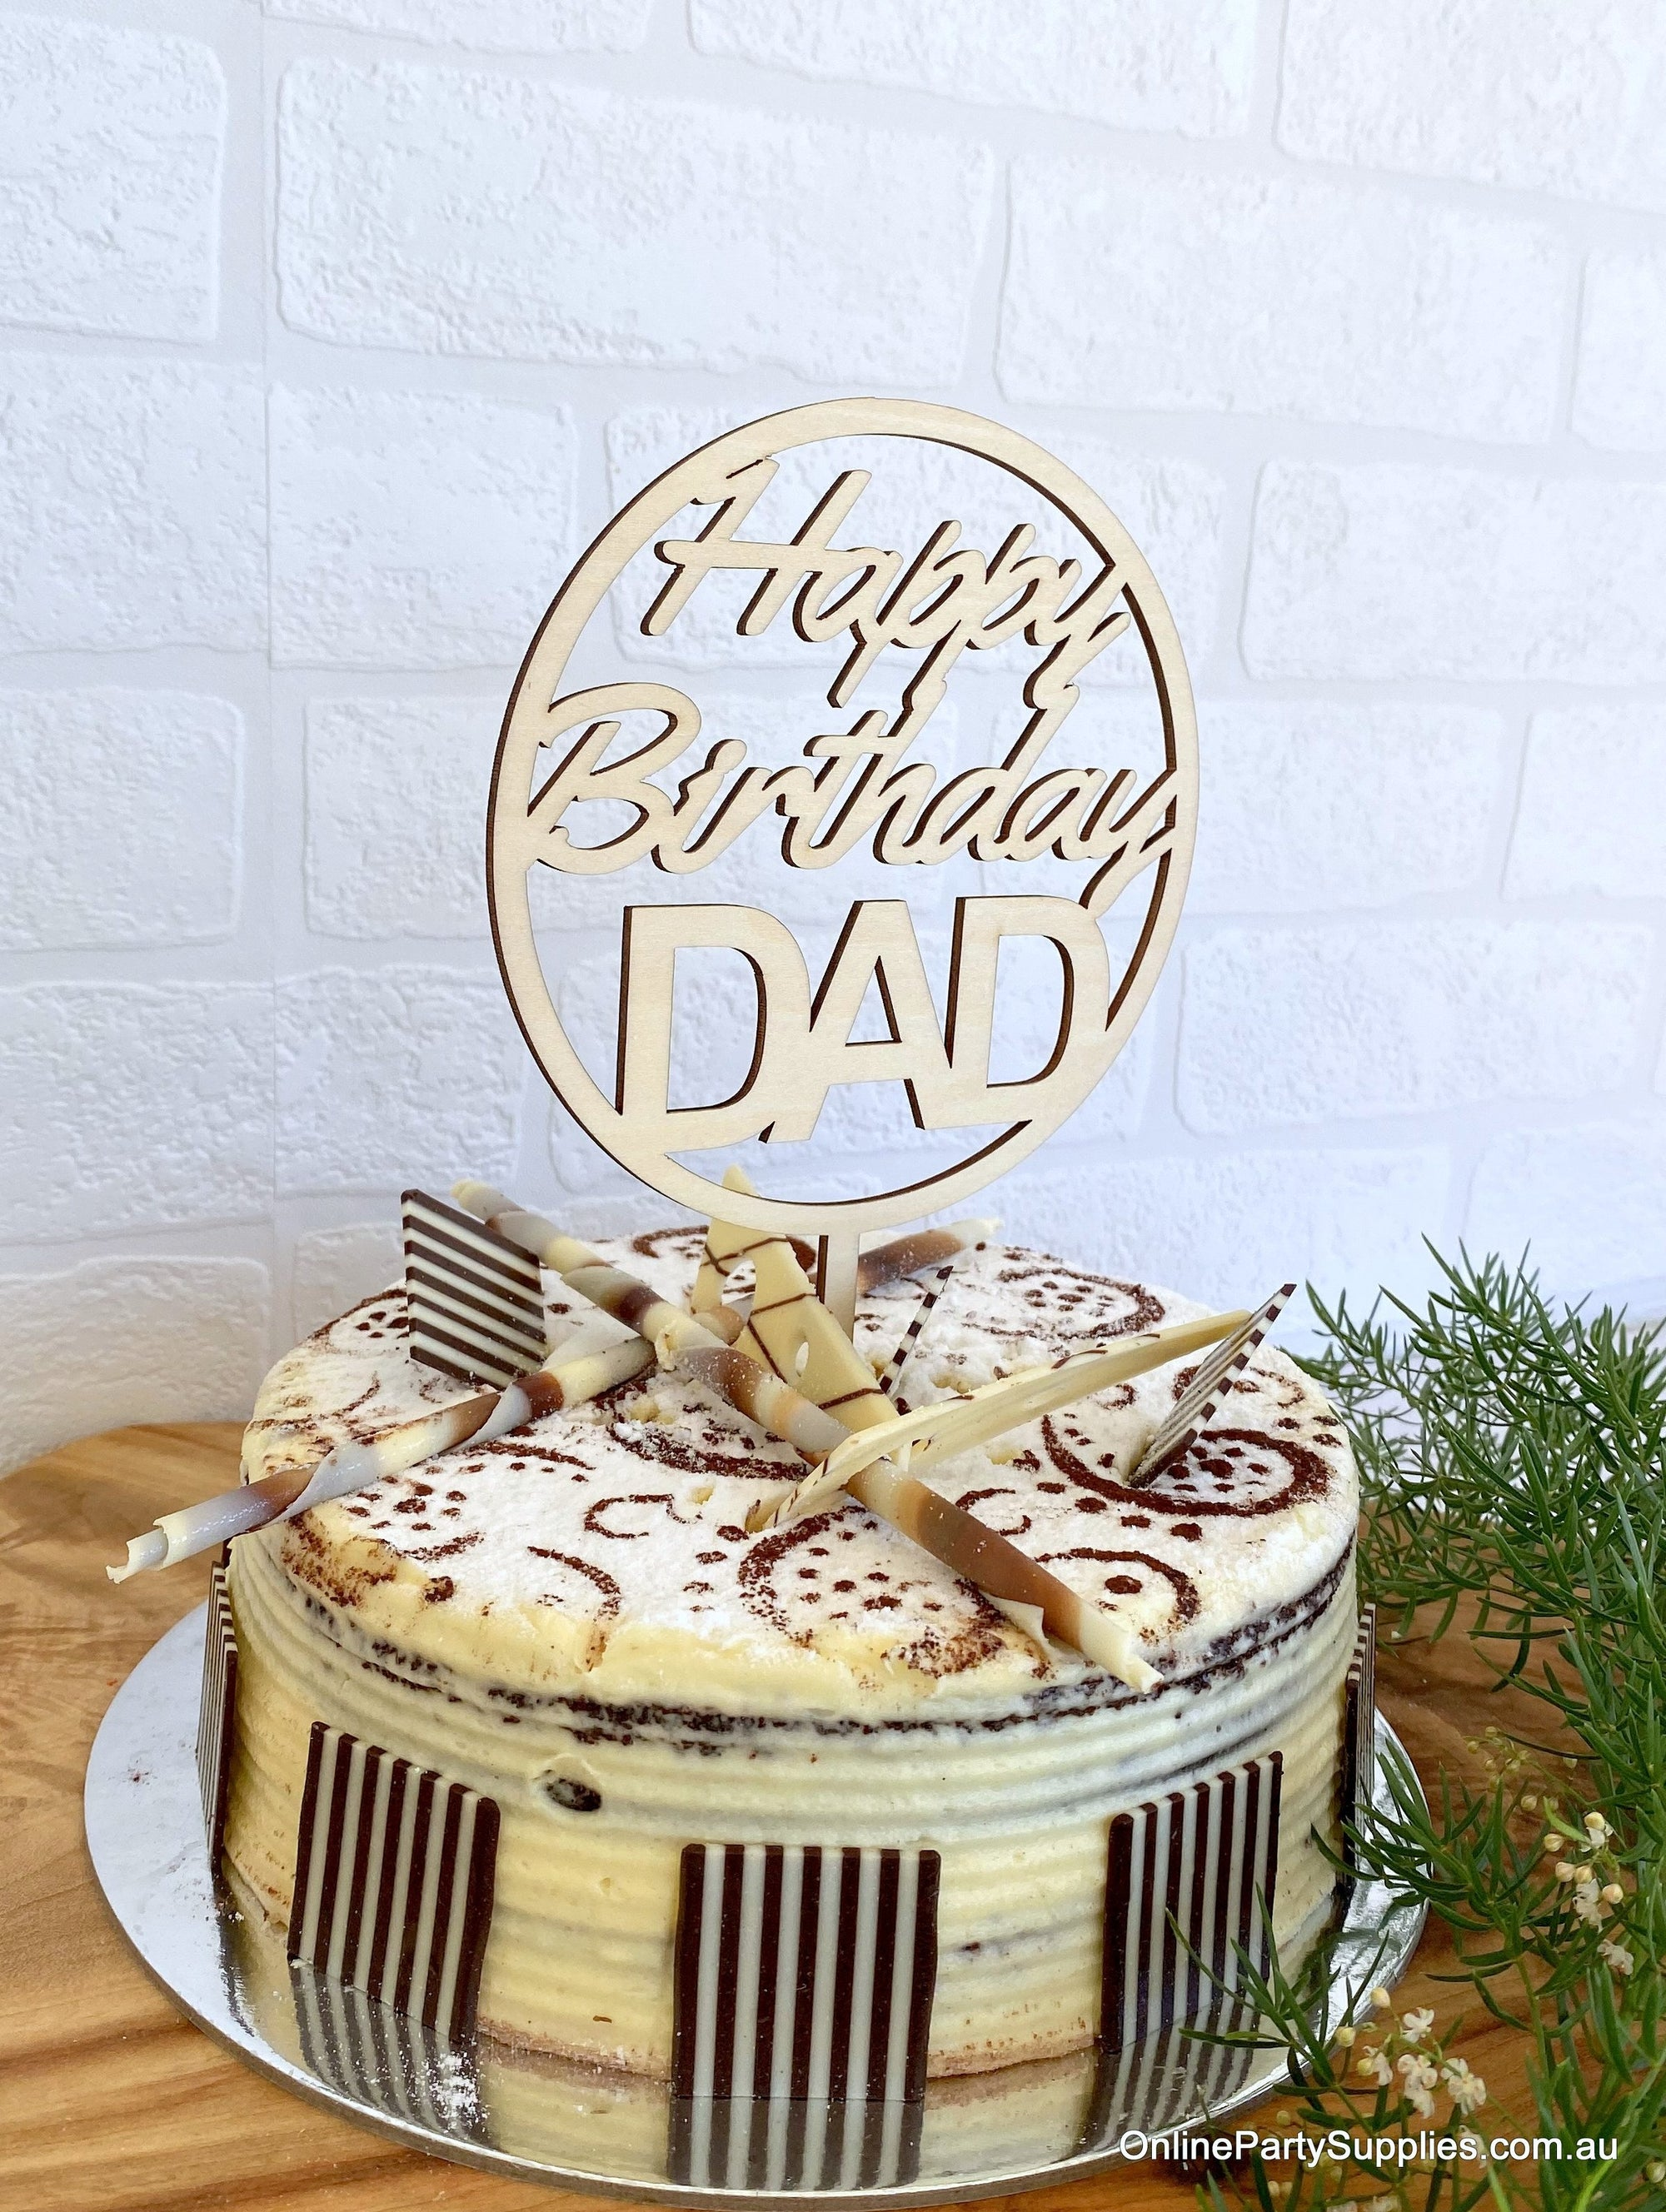 Pleasant Wooden Circle Happy Birthday Dad Script Cake Topper Online Party Funny Birthday Cards Online Inifofree Goldxyz